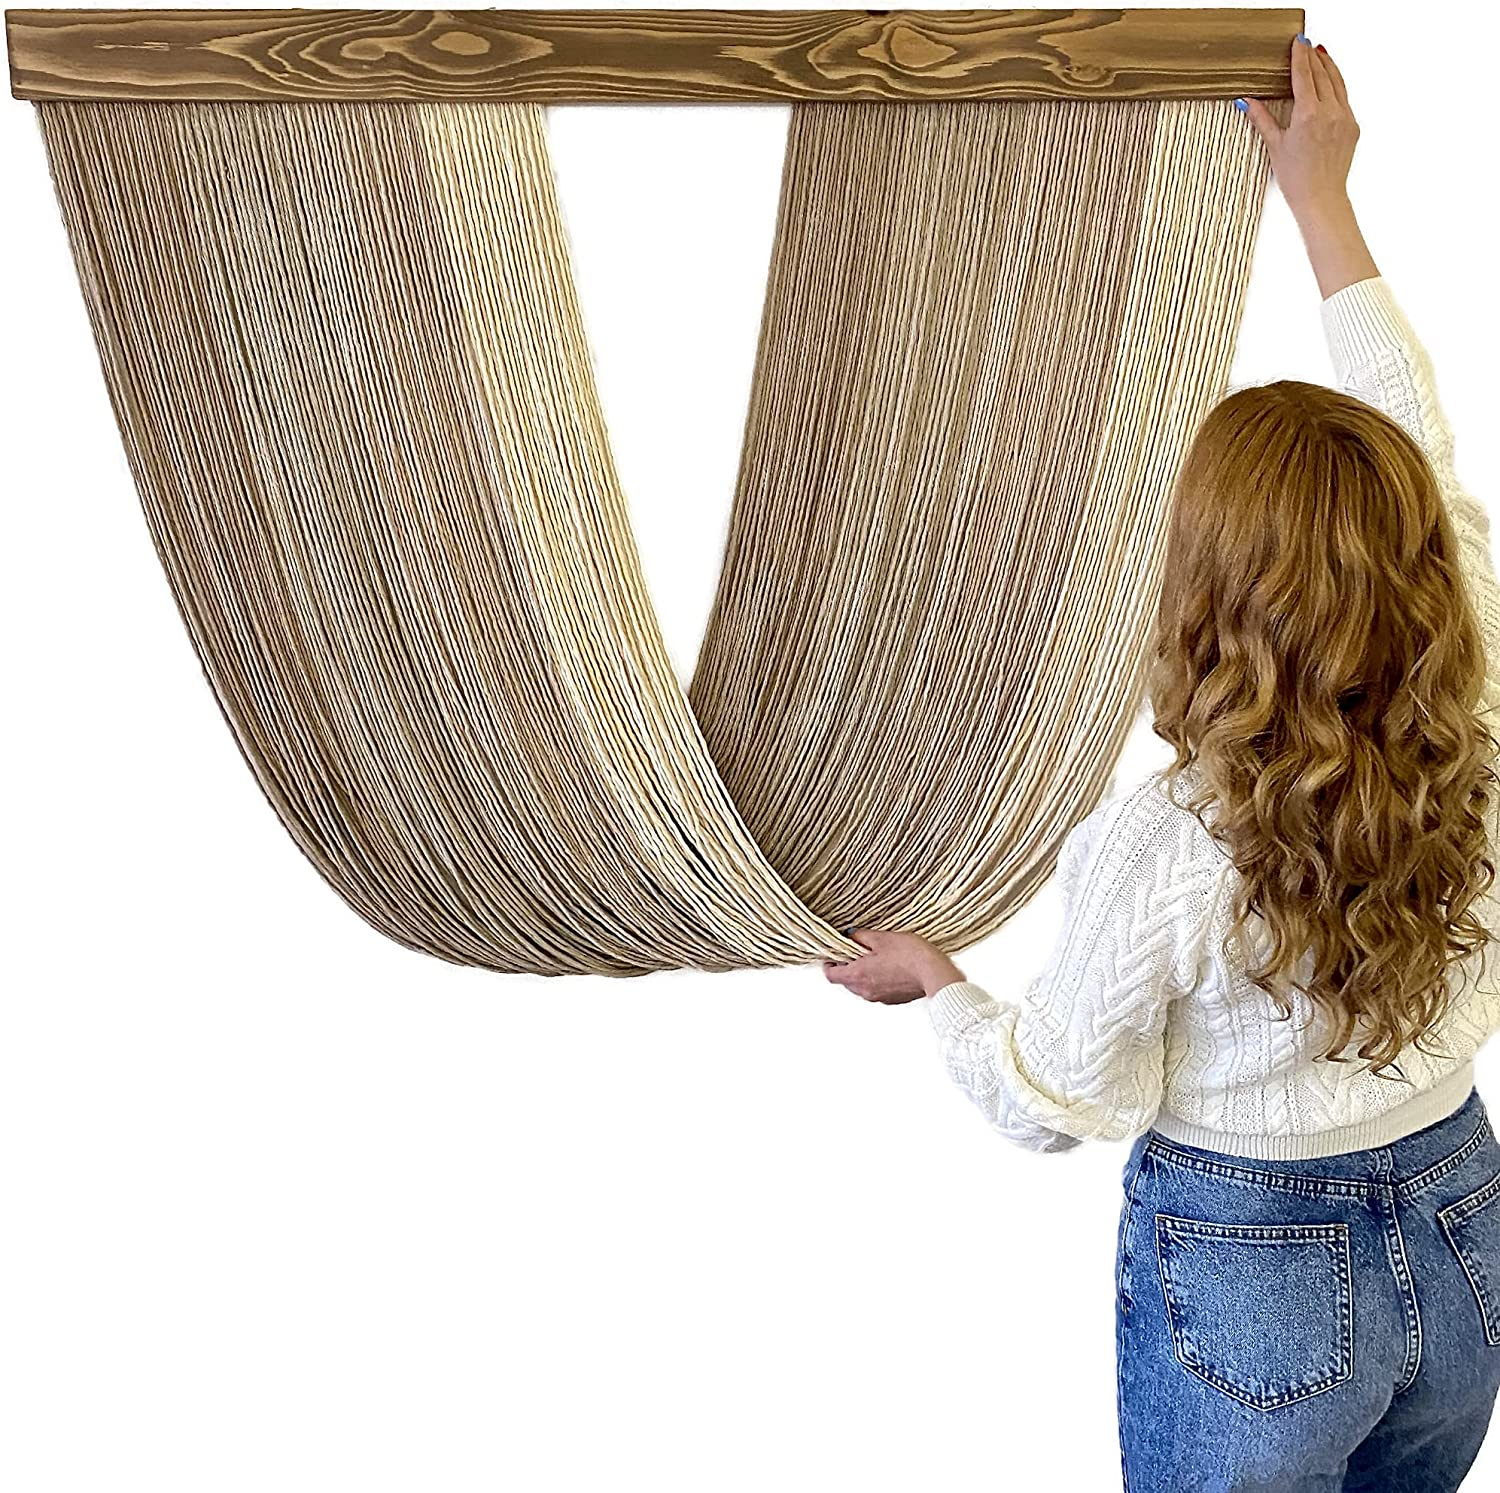 46 L x 34 H Macrame Wall Hanging, Boho Room Decor, Wall Decorations for Living Room, Bedroom Wall Decor Above Bed, Aesthetic Room Decor, Wall Art, Boho Wall Decor, Tapestry for Bedroom